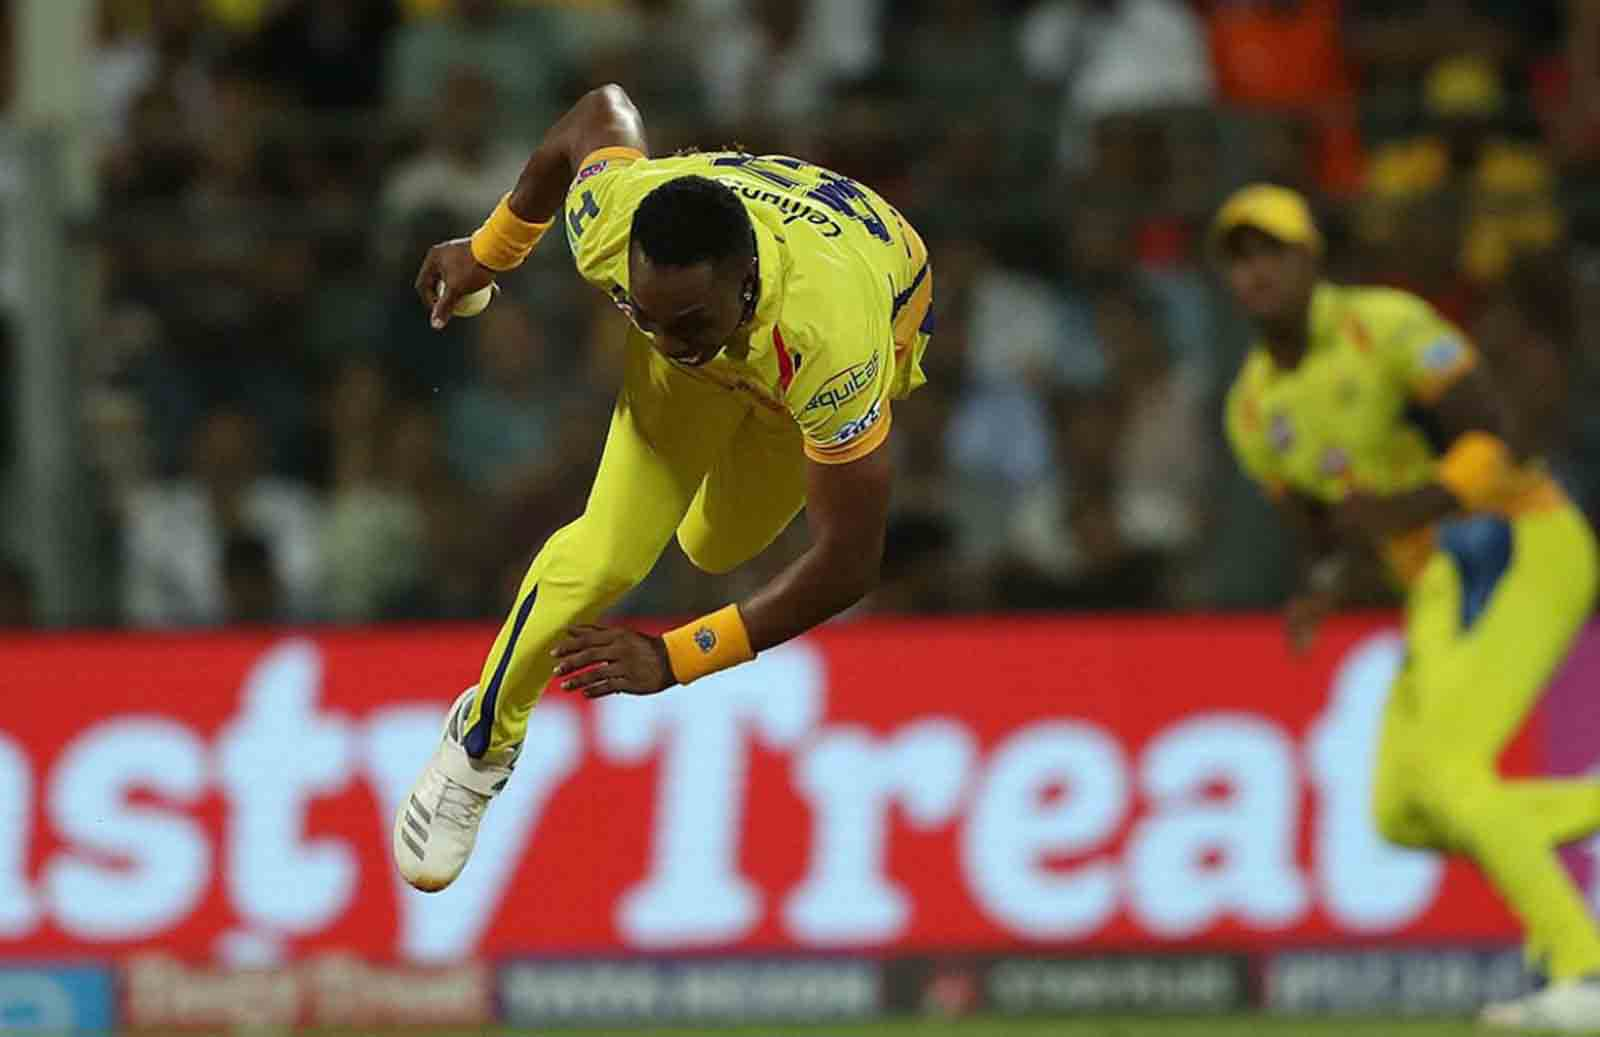 Chennai Super Kings Star All-Rounder Ruled Out of IPL 2020: CSK CEO Gives An Official Update